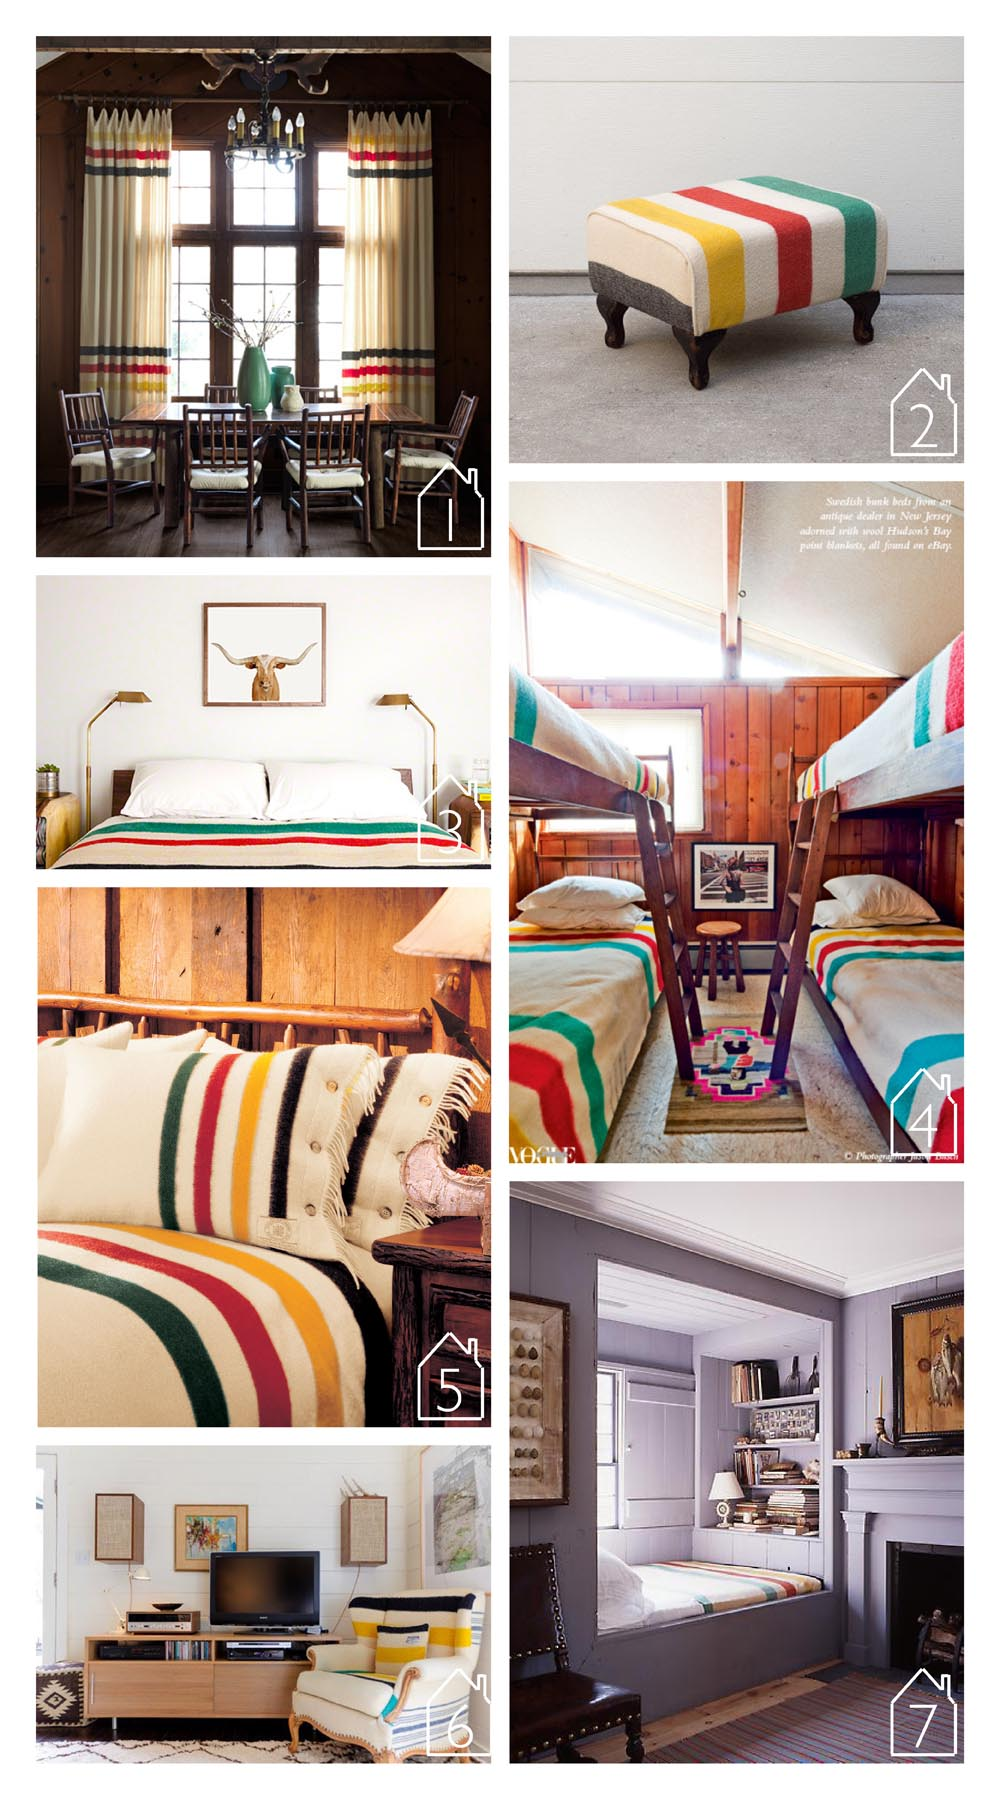 1. home of Mark and Linda Heister featured in Country Living  2. custom hudson bay ottoman by HomesteadSeattle via Etsy  3. room featured on The Animal Print Shop  4. hampton's beach house of Richard Christiansen via  Vogue Living   5. capote pillow shams via Woolrich  6. home of Pietsie Campbell and Stephen Hootstein via Apartment Therapy  7. via REMODELISTA